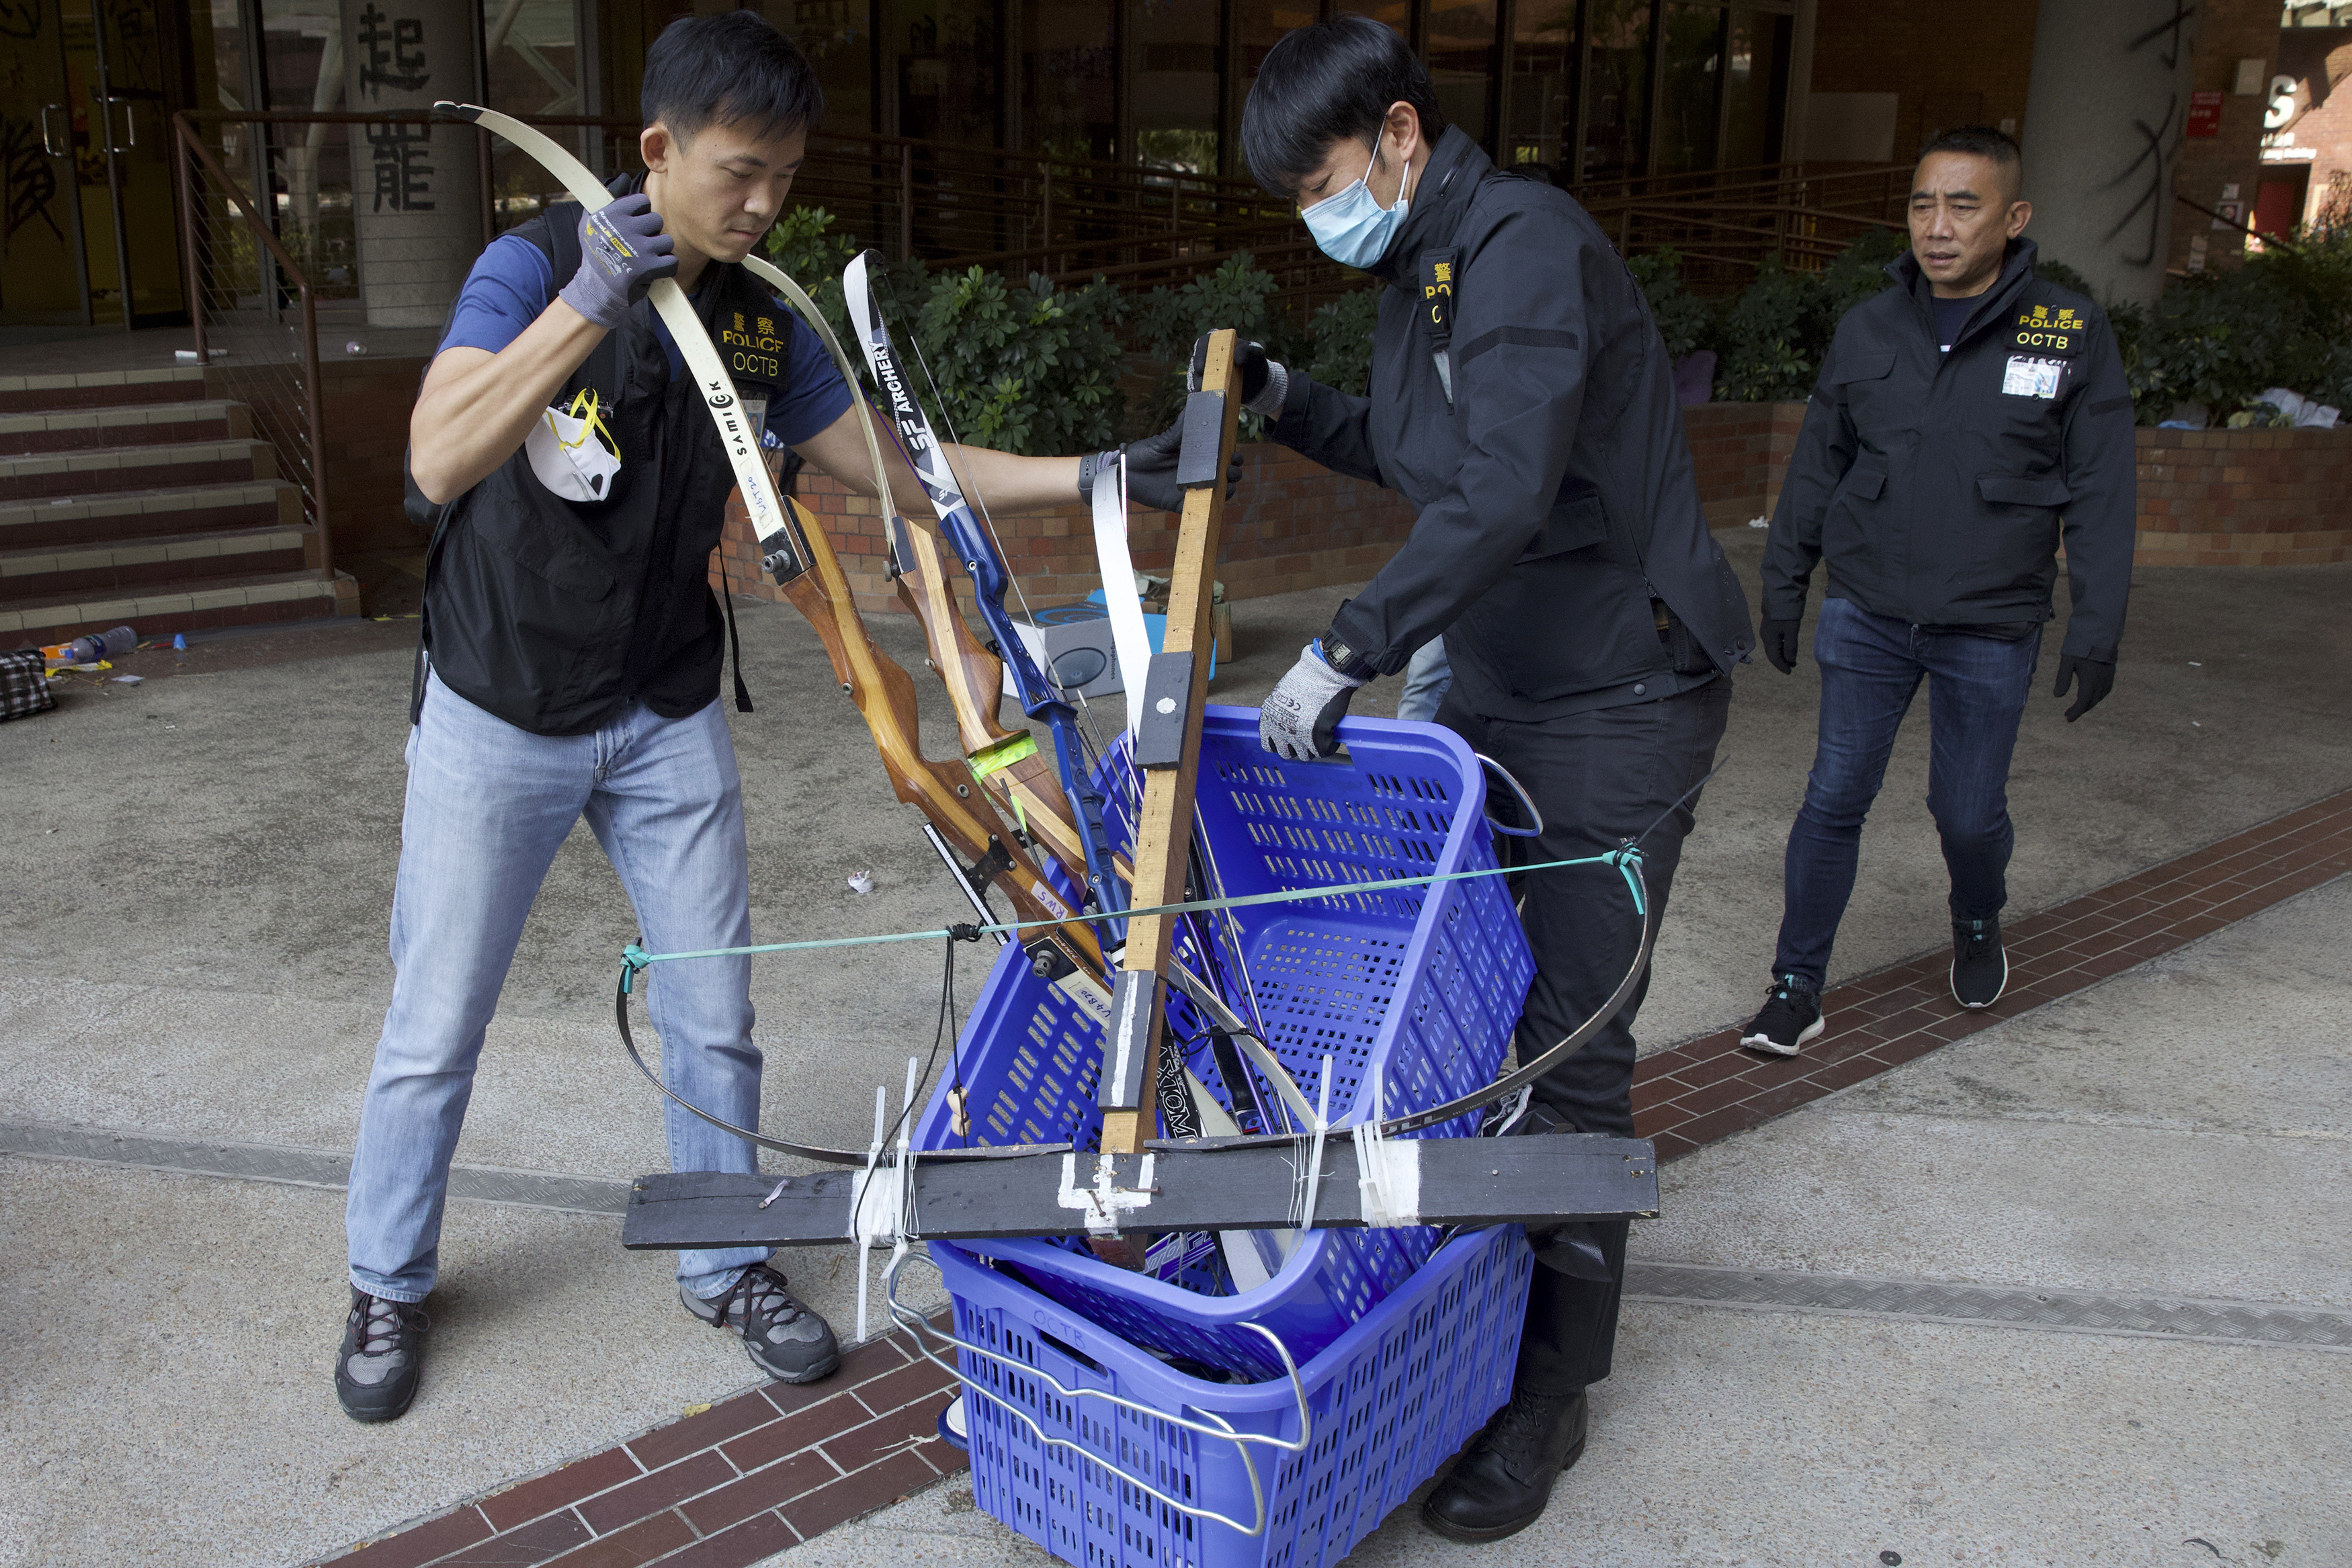 , Hong Kong Police Just Seized $9 Million and a Bunch of Arrows From Pro-Democracy Protesters, Saubio Making Wealth